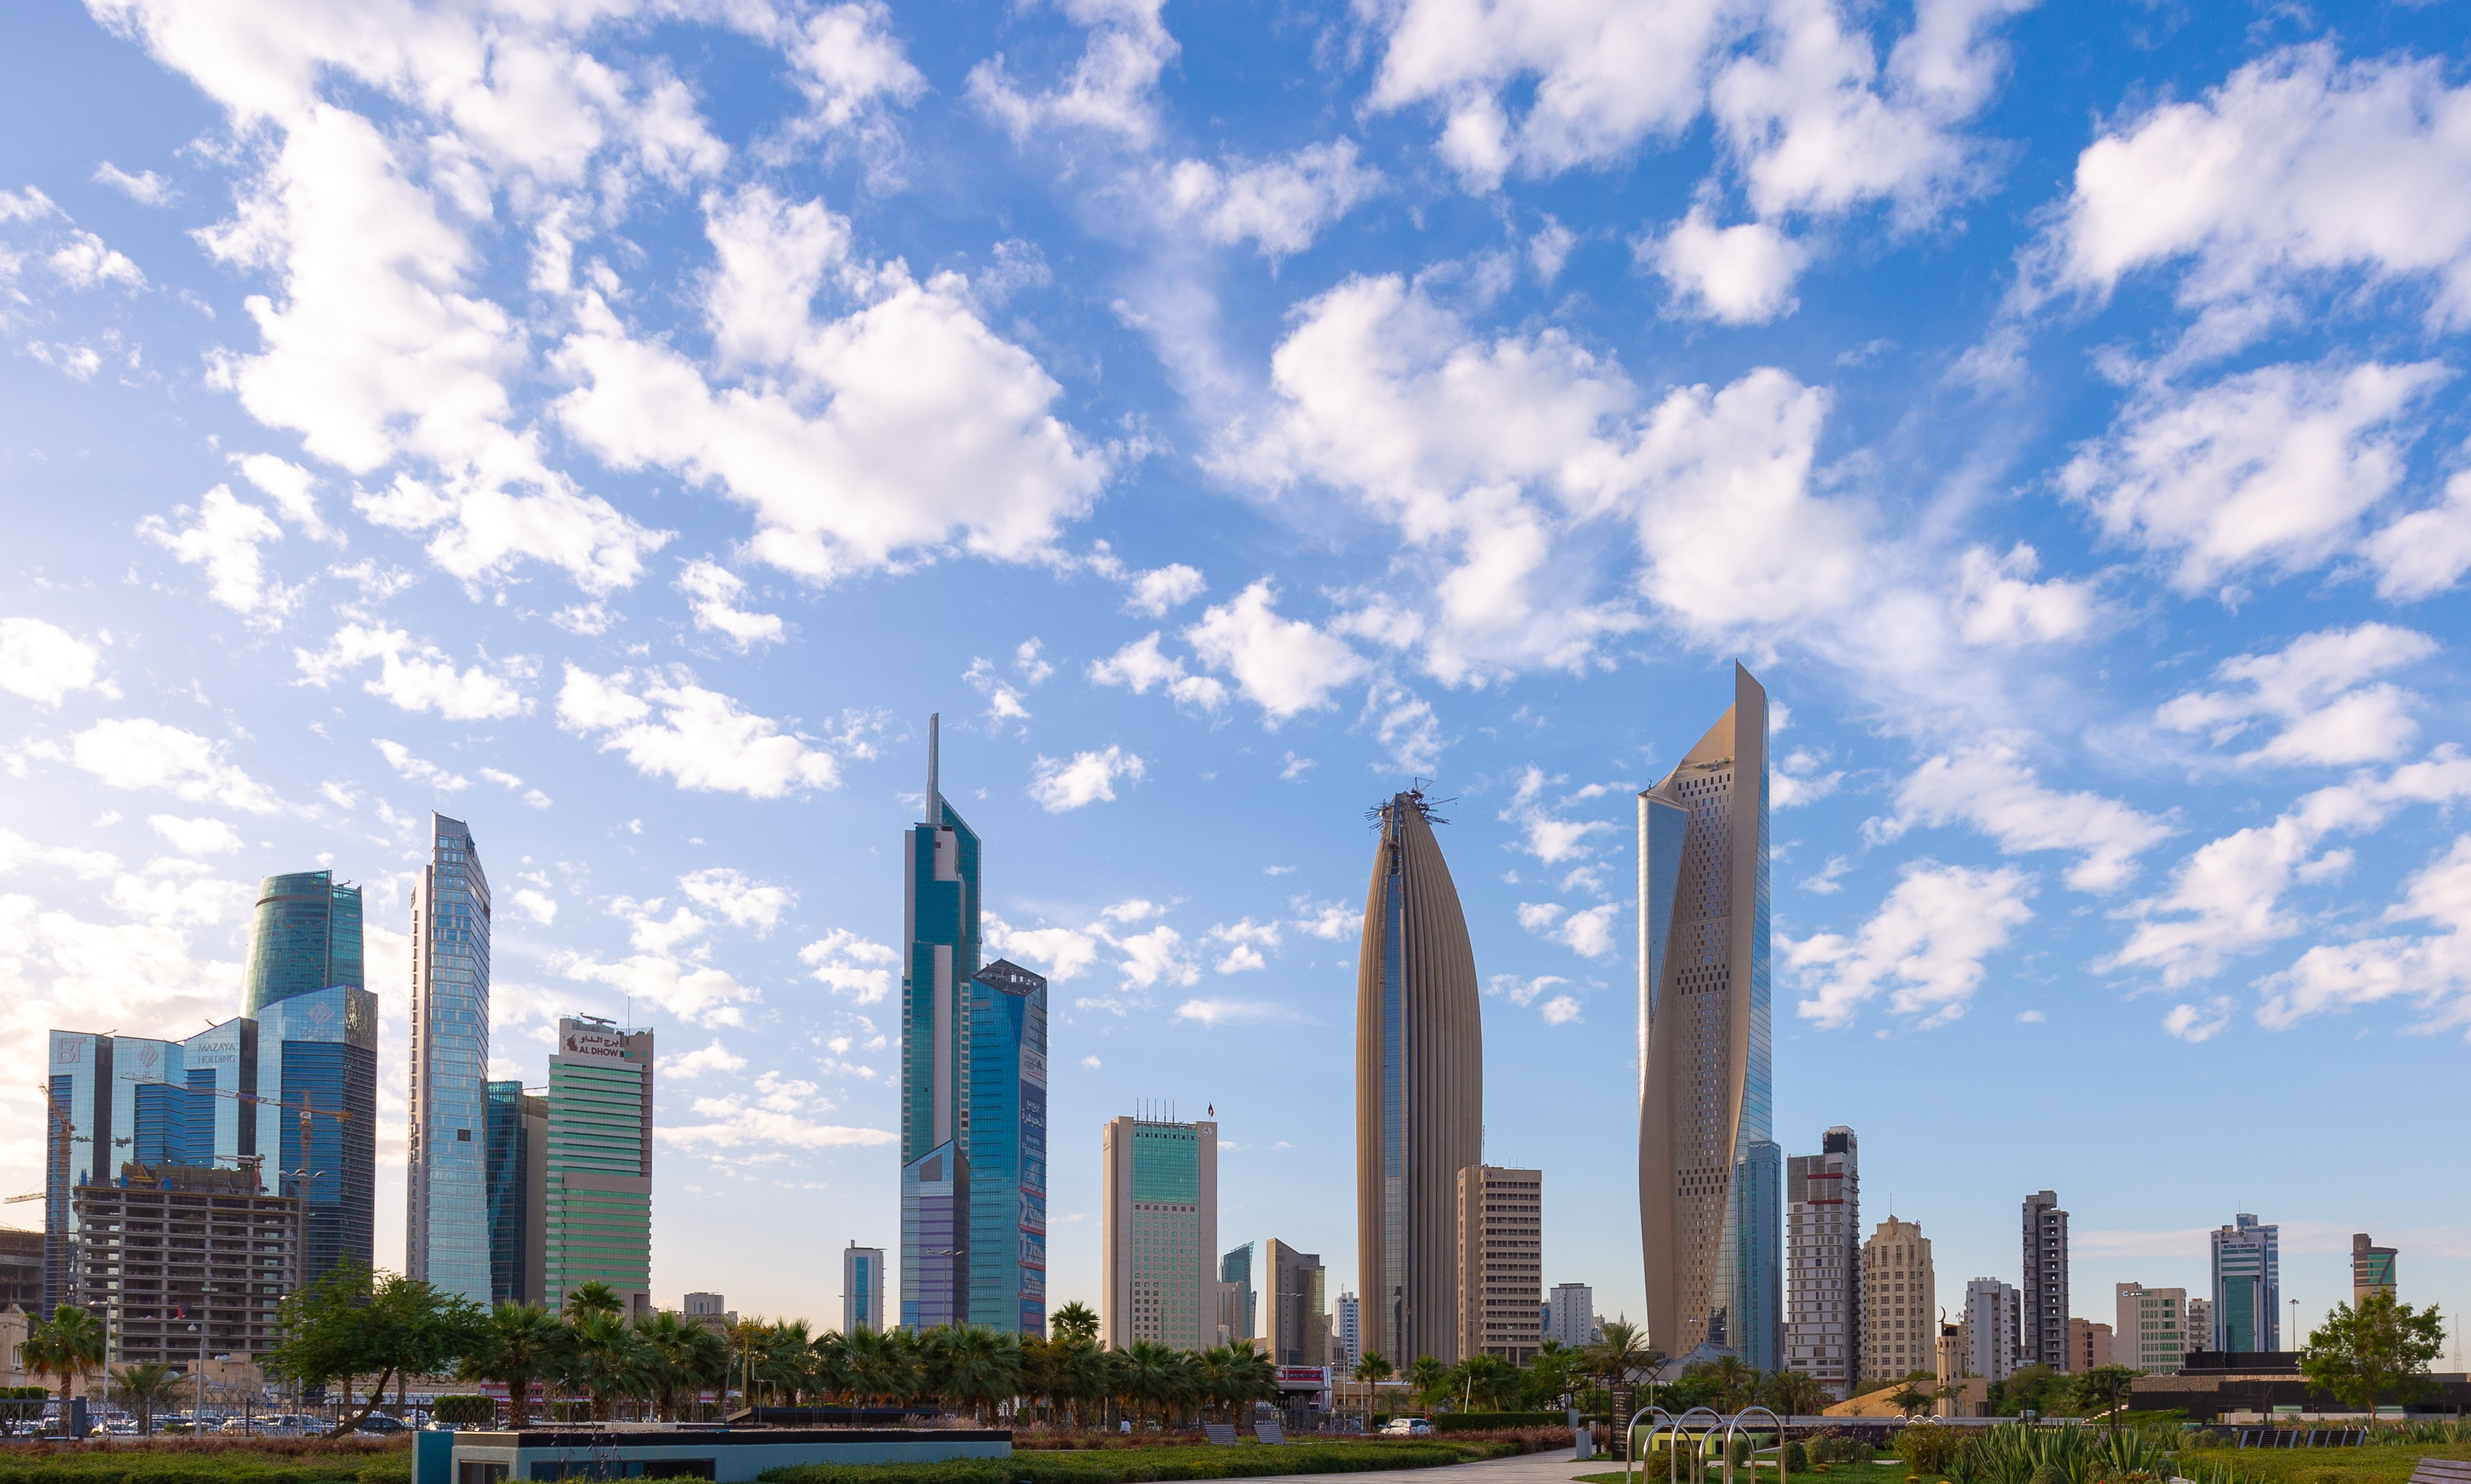 Kuwait is a Muslim country with strict laws so you need to know your moving right and know your moving right and responsibilities